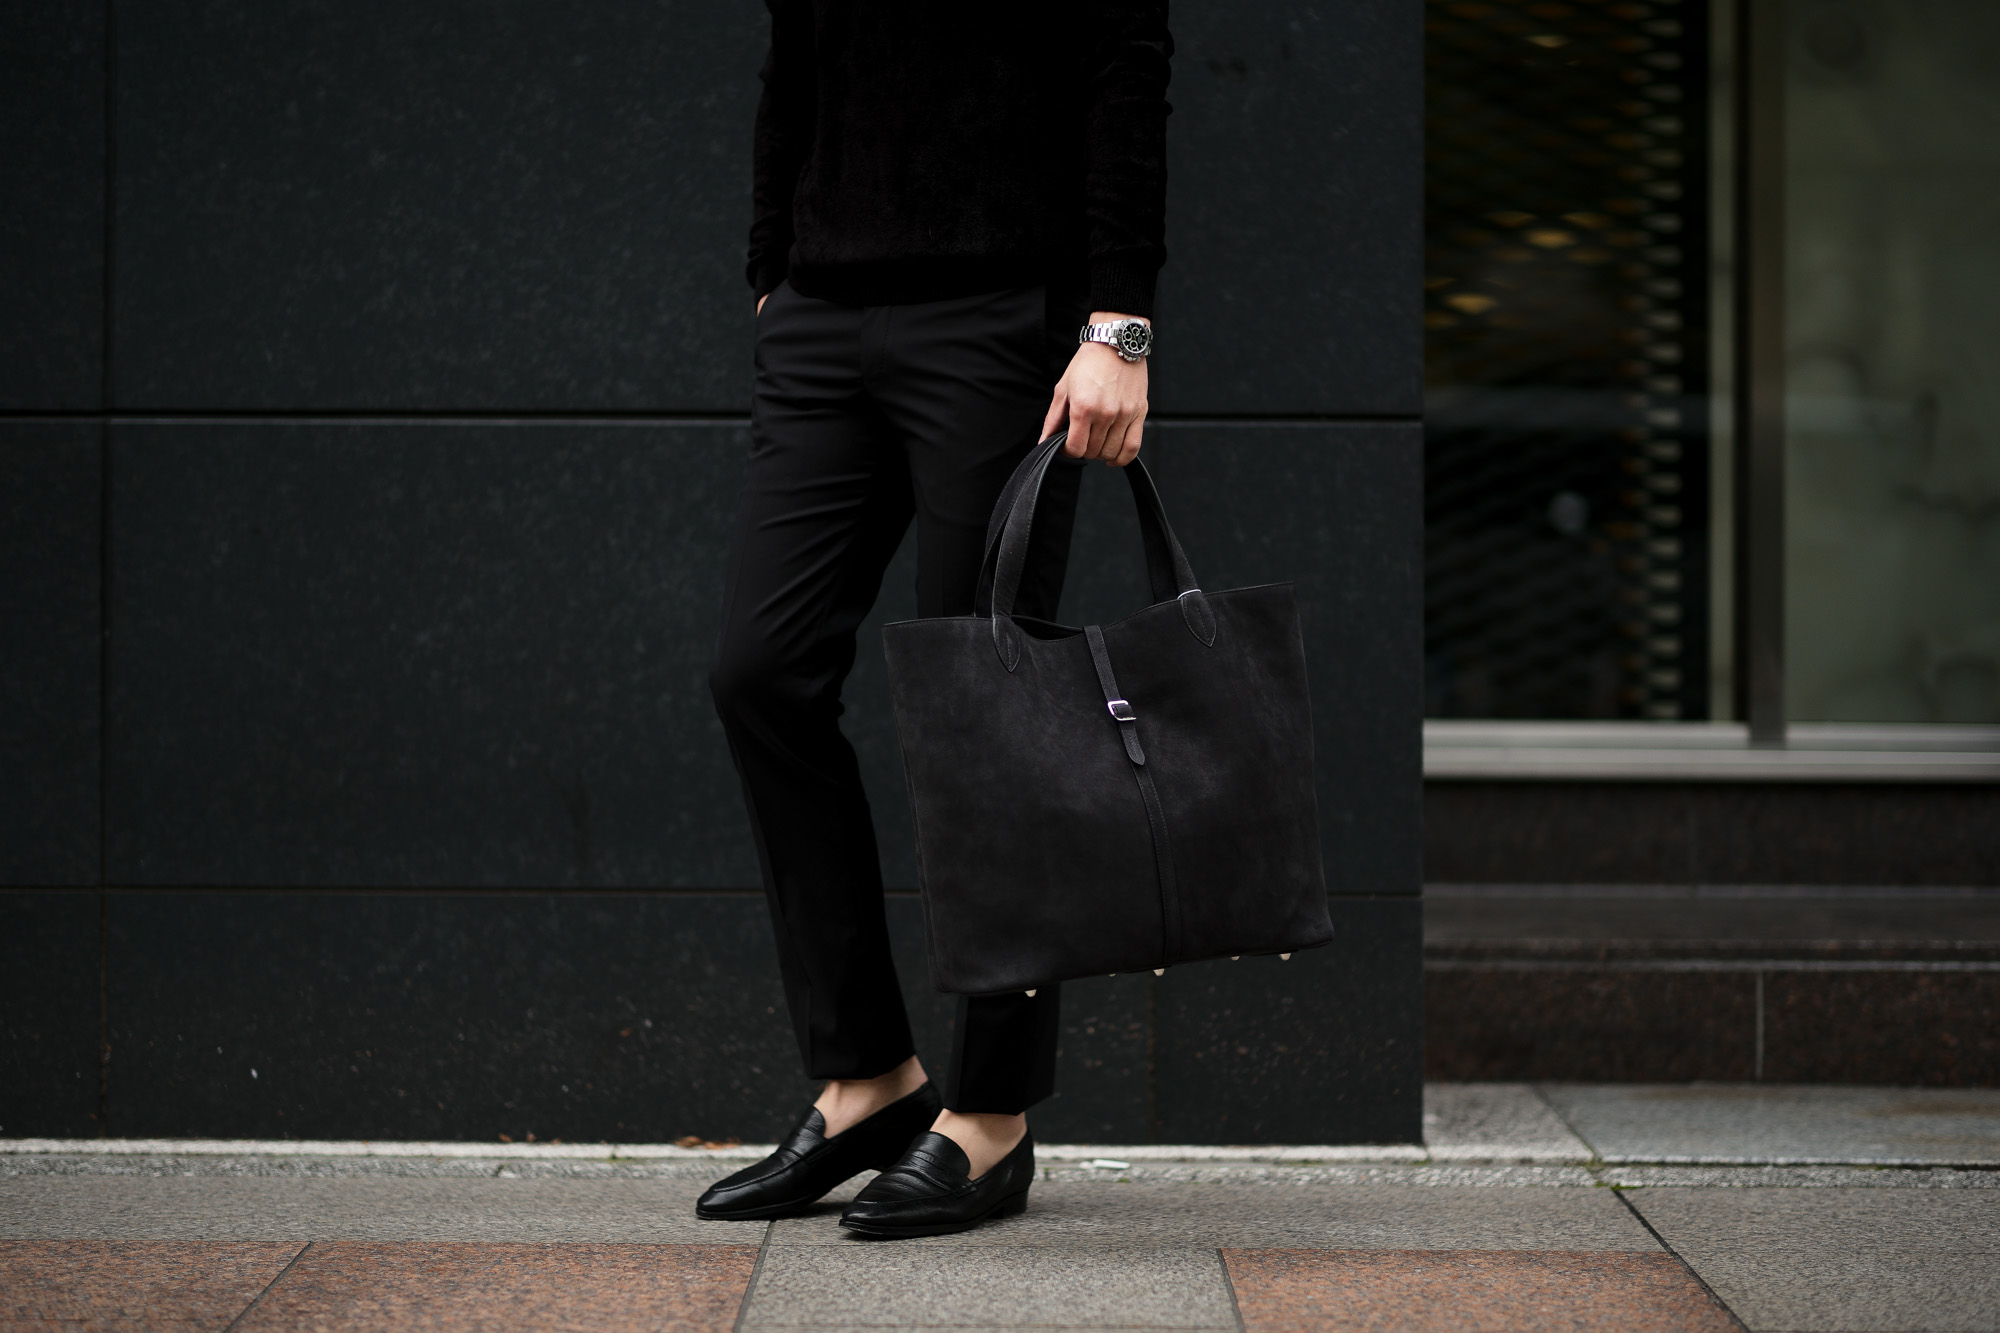 ACATE (アカーテ) KAUS (カウス) Calf Nubuck leather (カーフヌバックレザー) トートバッグ レザーバッグ NERO (ネロ) MADE IN ITALY (イタリア製) 2020 春夏新作  愛知 名古屋 altoediritto アルトエデリット